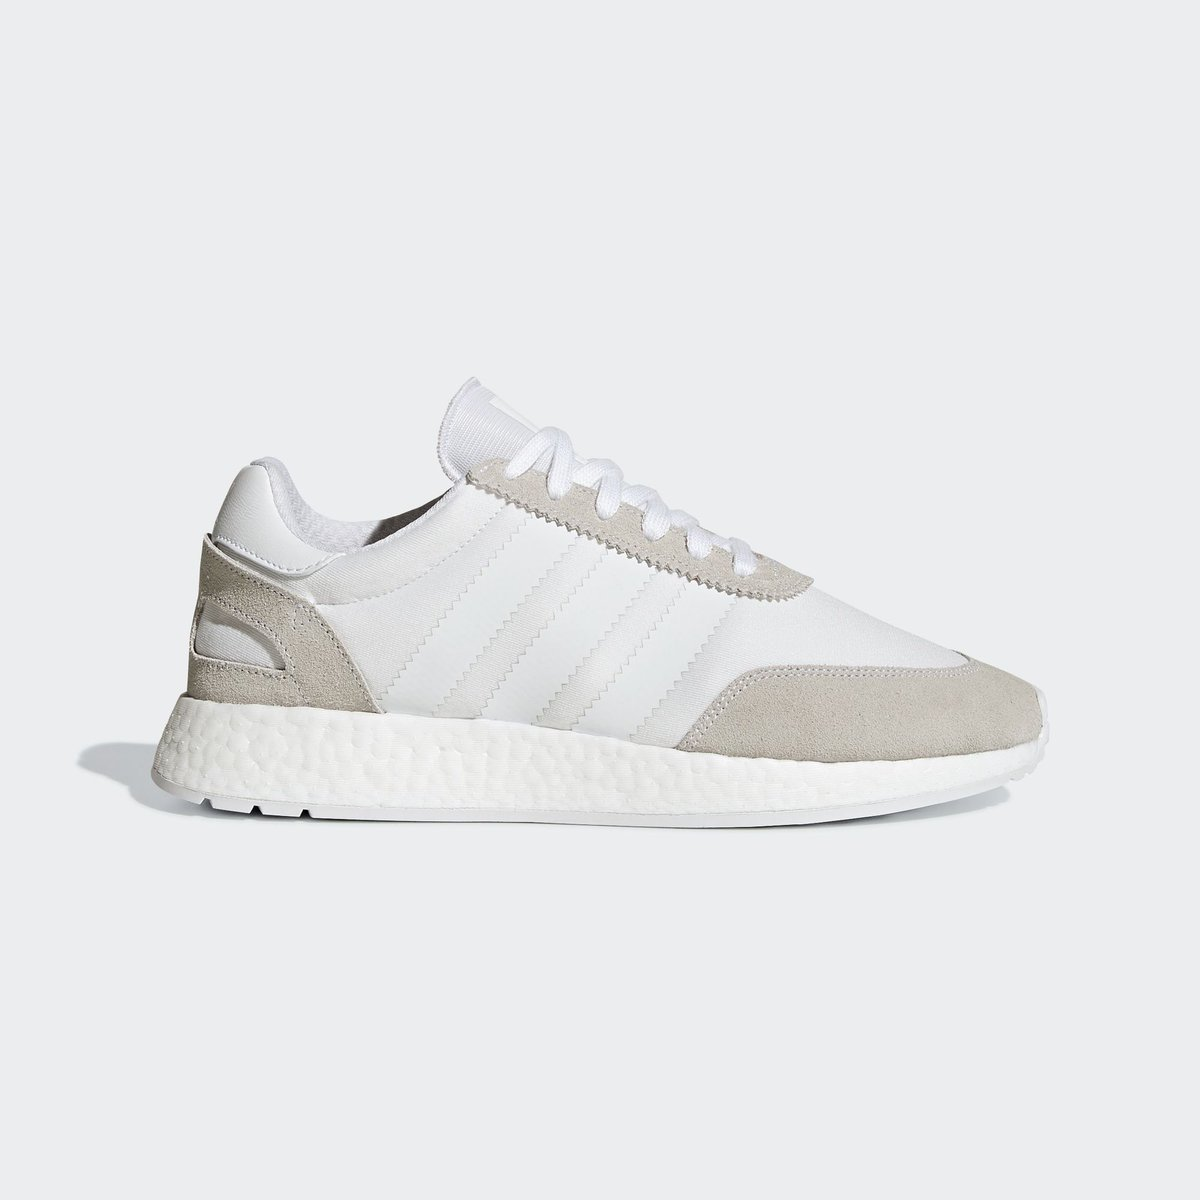 timeless design af676 74b9b Under retail on  adidas US. adidas Iniki Runner i-5923. Retail  130. Now   87 shipped. Use code 3STRIPE in cart. Sign in to adidas account for access.